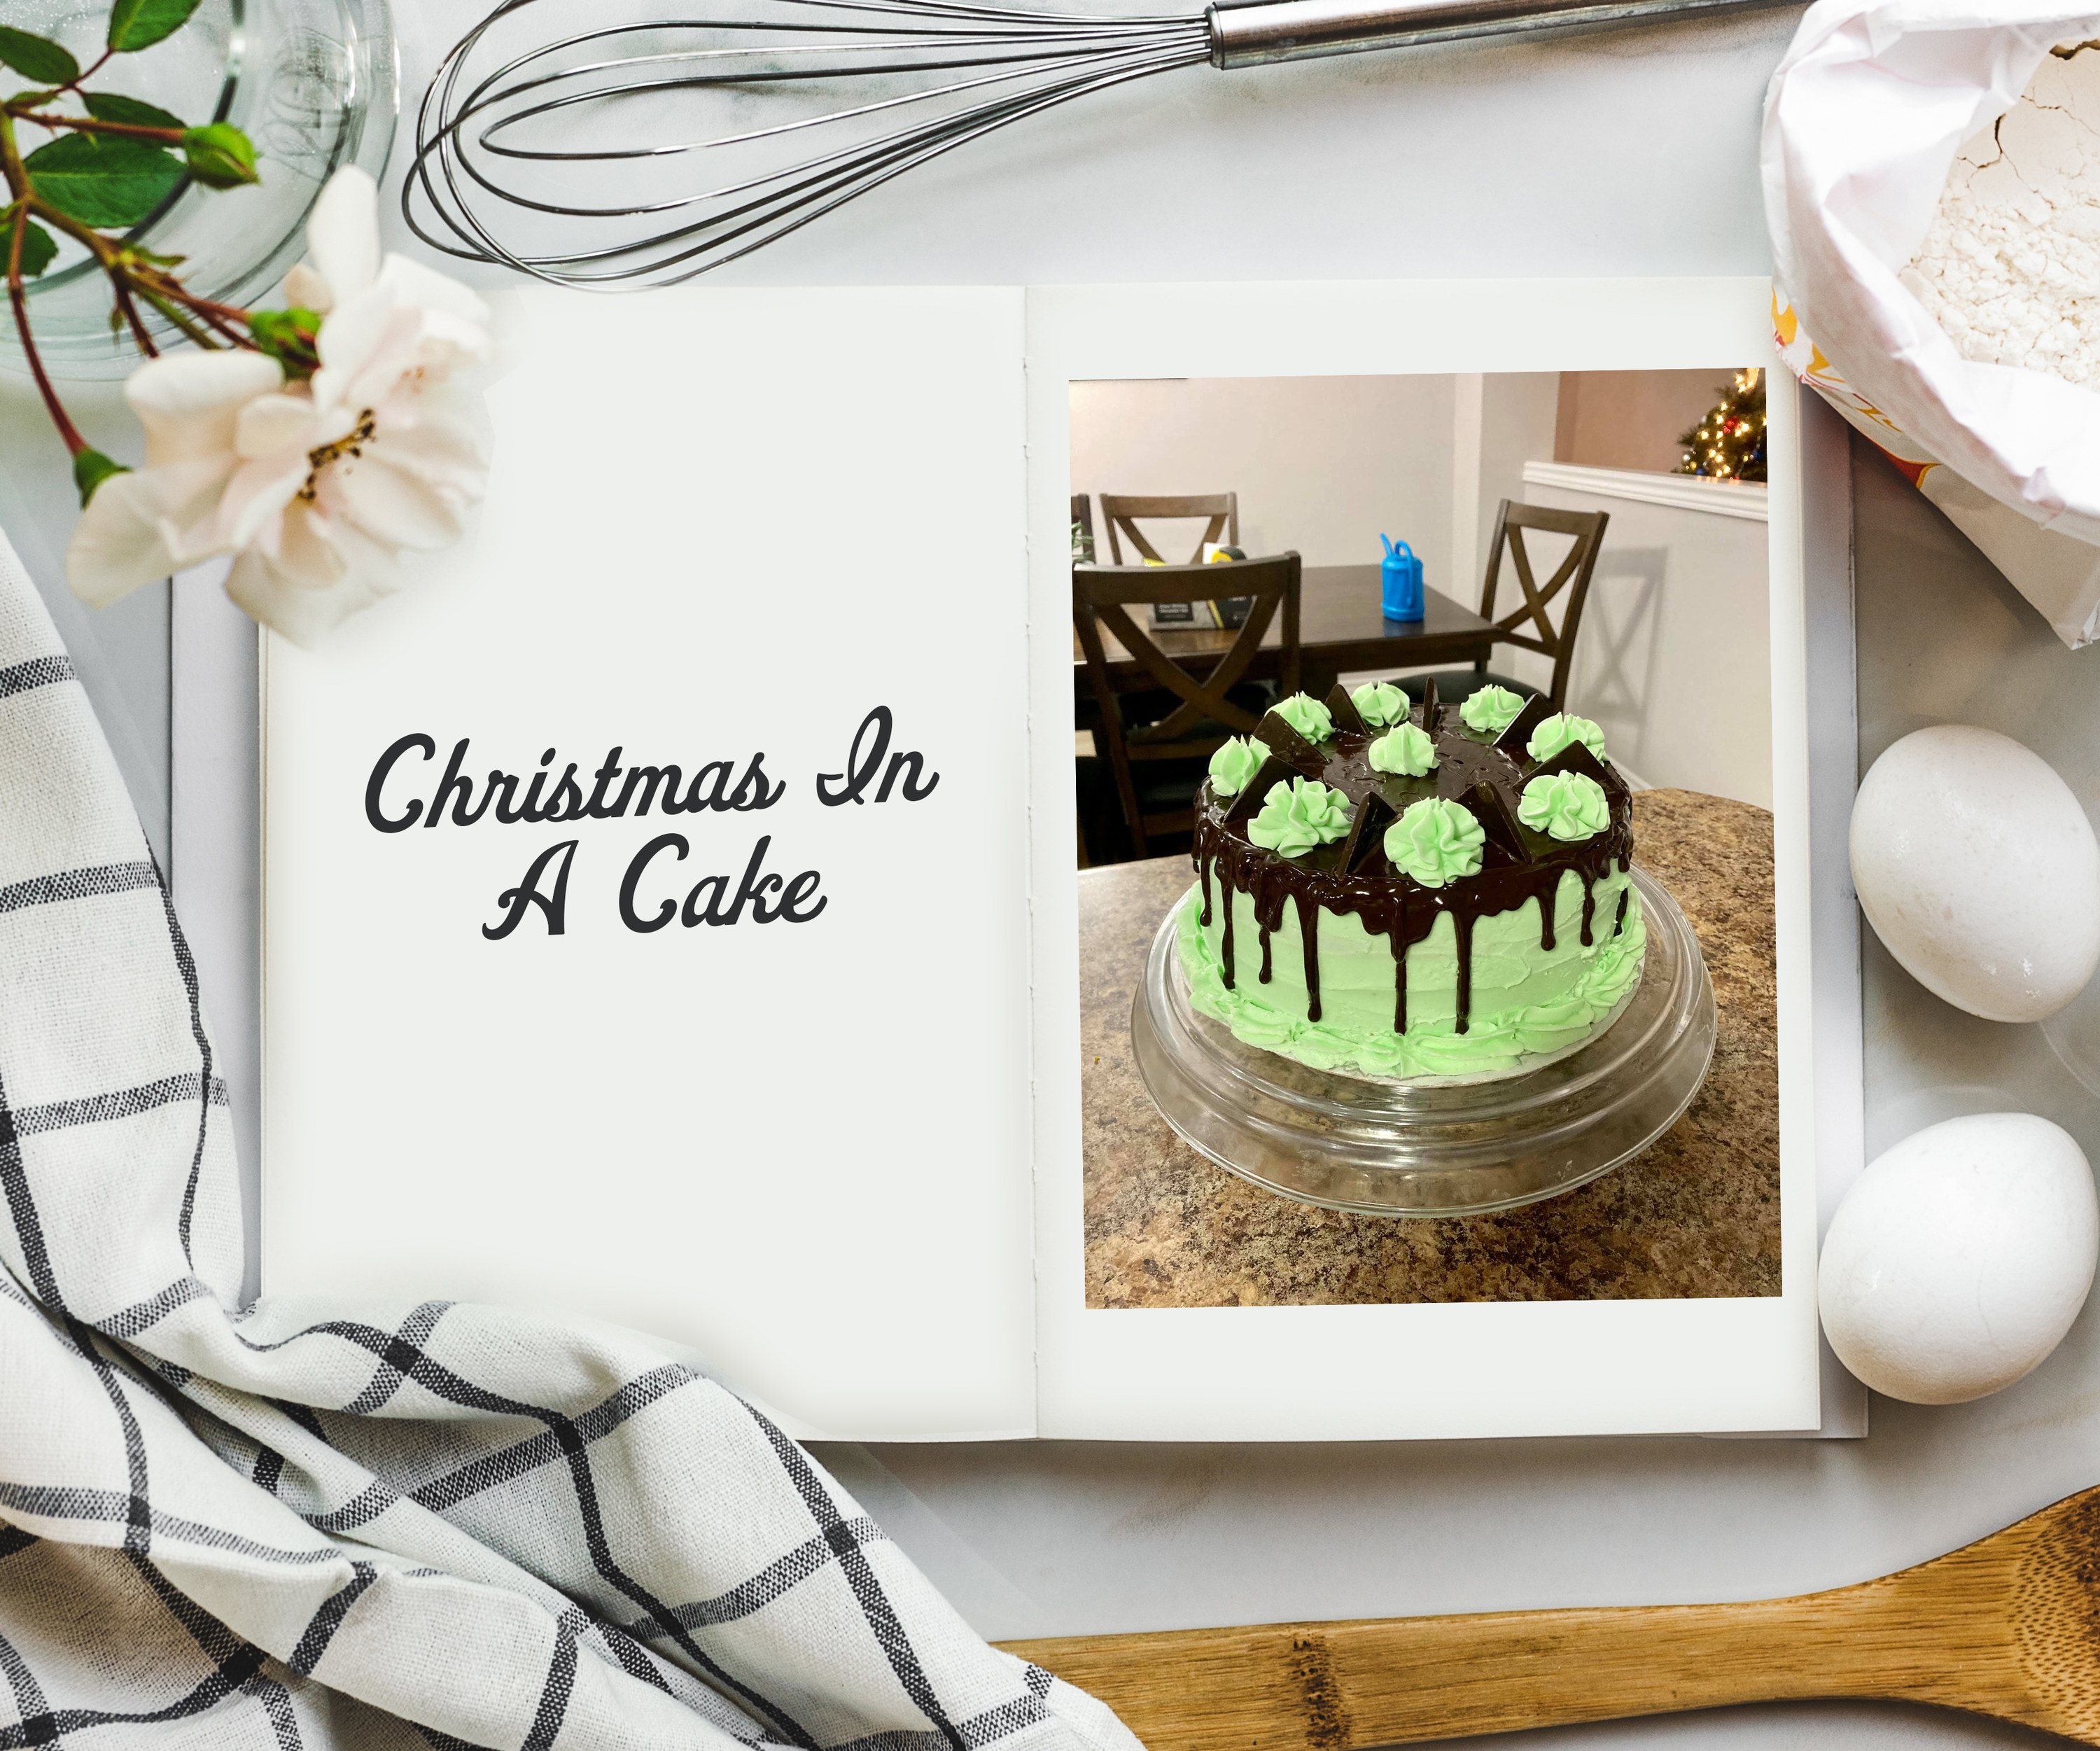 An overhead shot of cookbook on a table surrounded by ingredients and a photo on the inside of a lime green cake on a cake-stand covered with chocolate ganache on top and piped green florets.